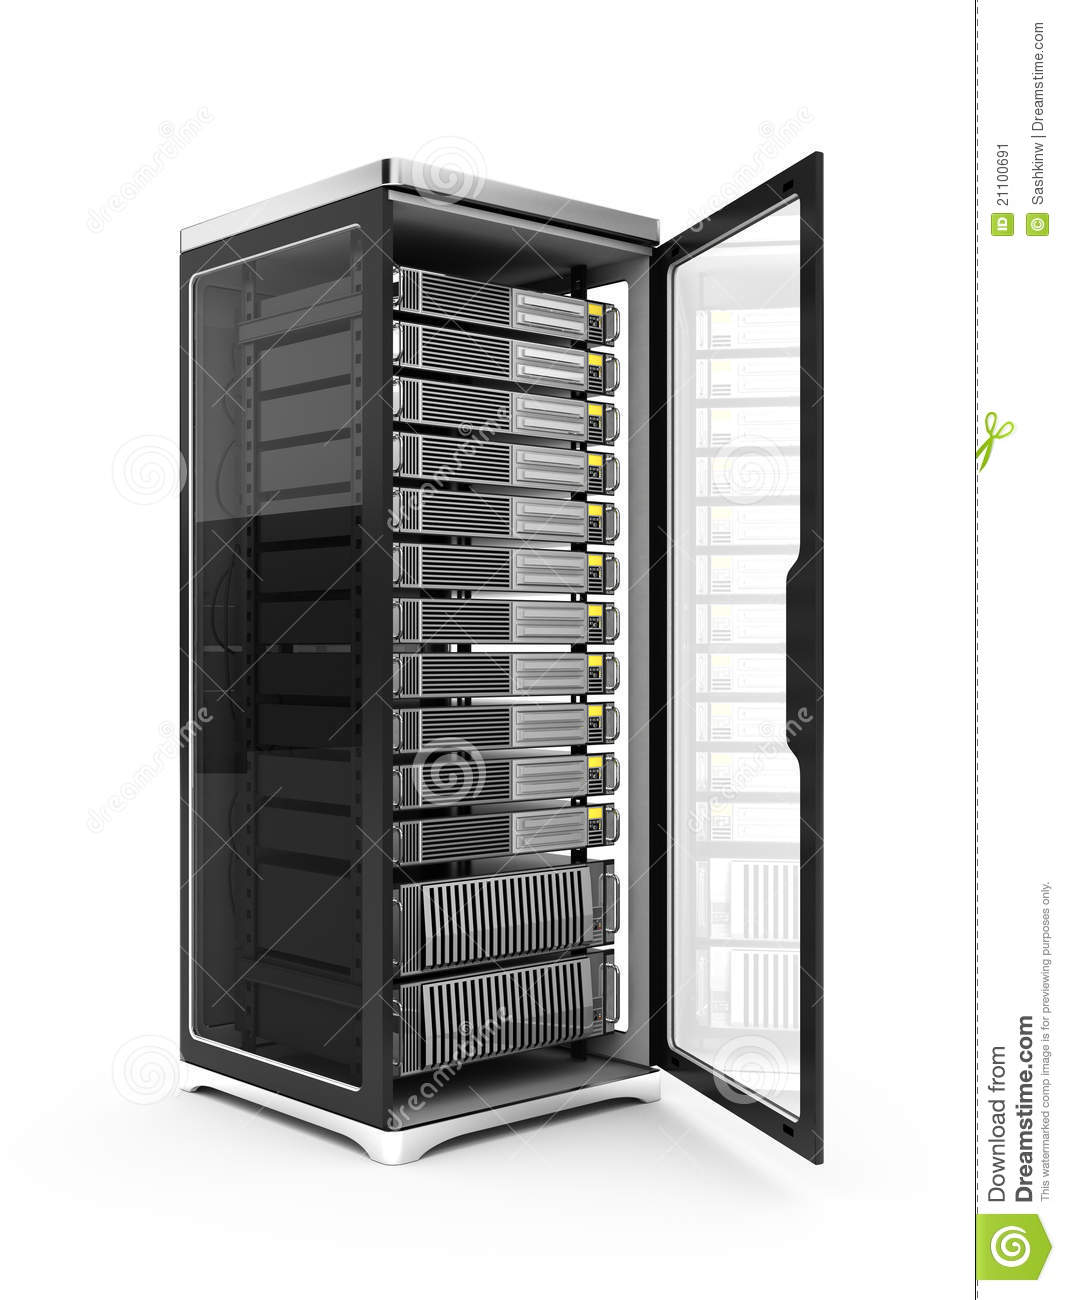 Server Rack Clipart 20 Free Cliparts Download Images On